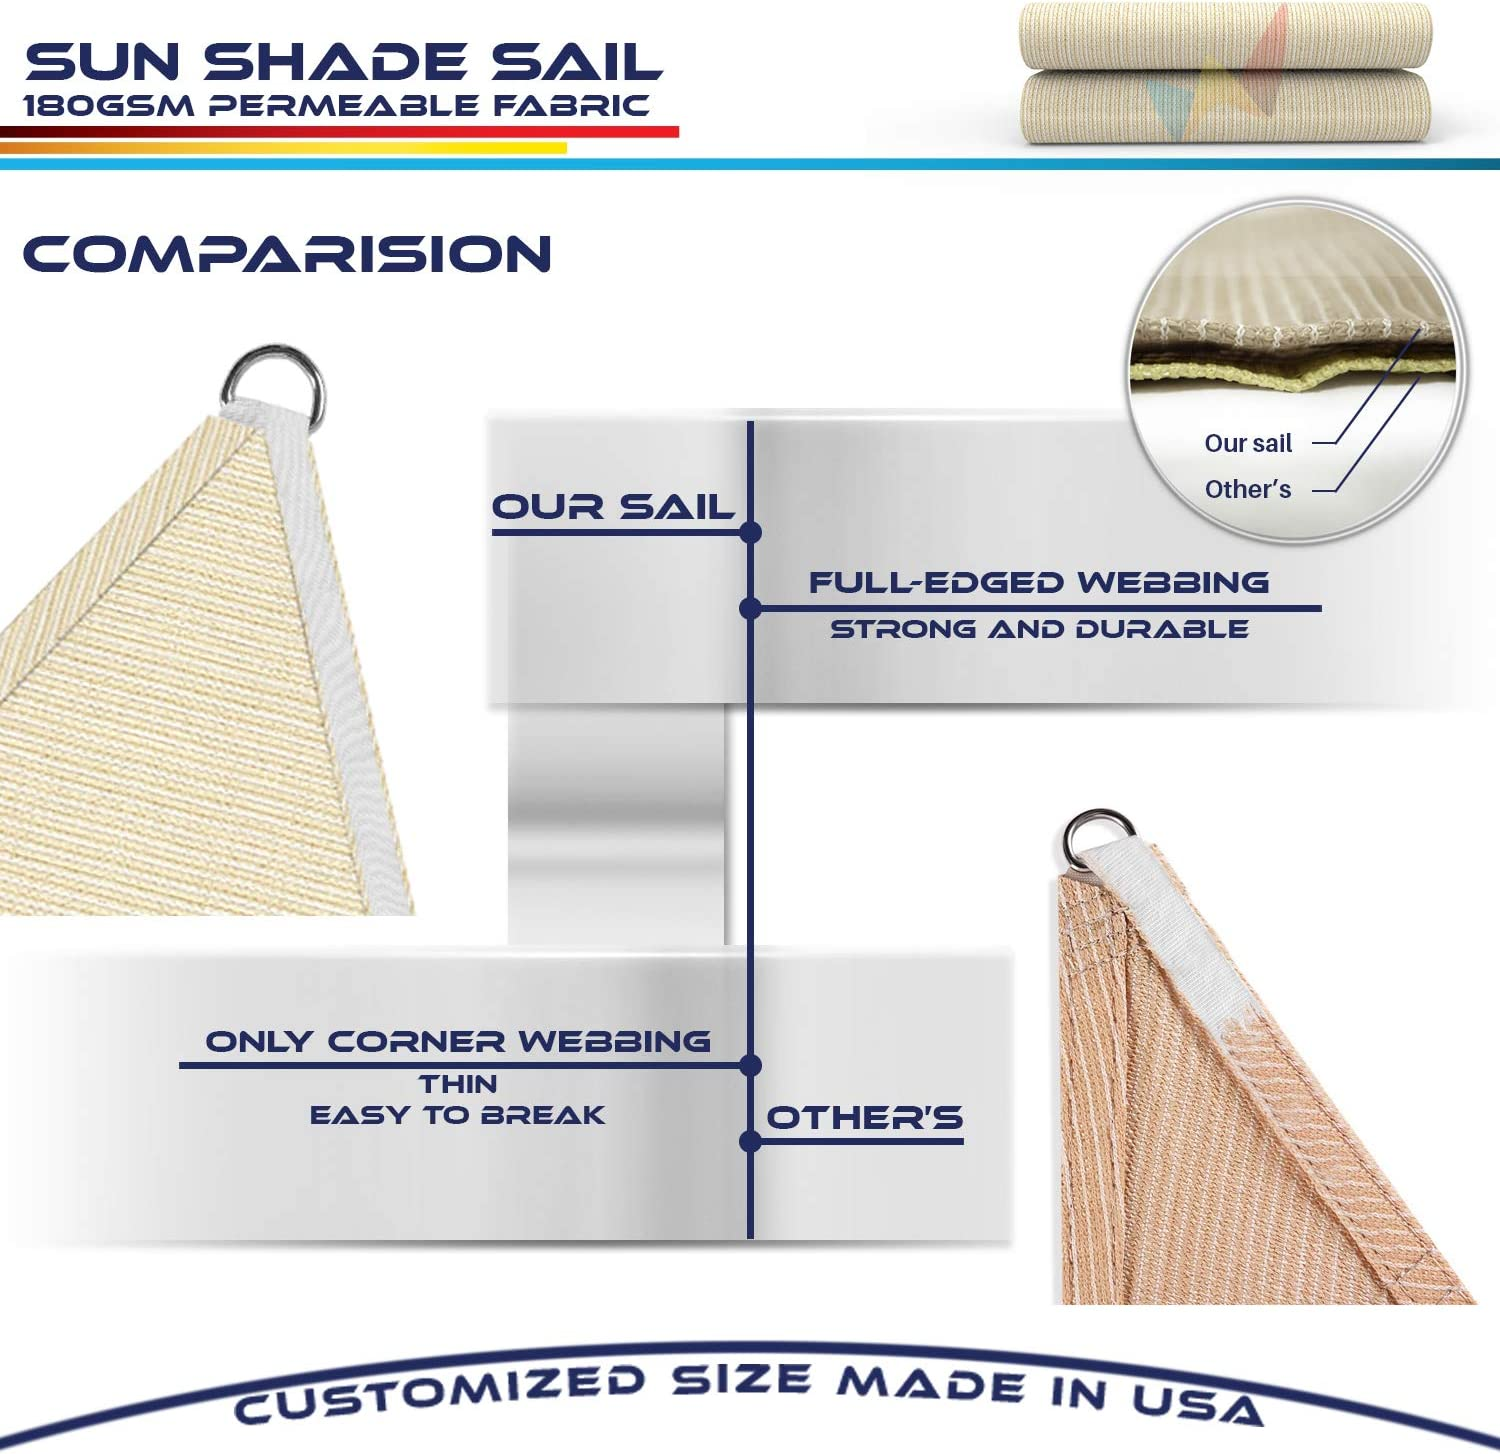 Windscreen4less 8 x 8 x 8 Sun Shade Sail Canopy in Beige with Commercial Grade Customized 3 Year Warranty